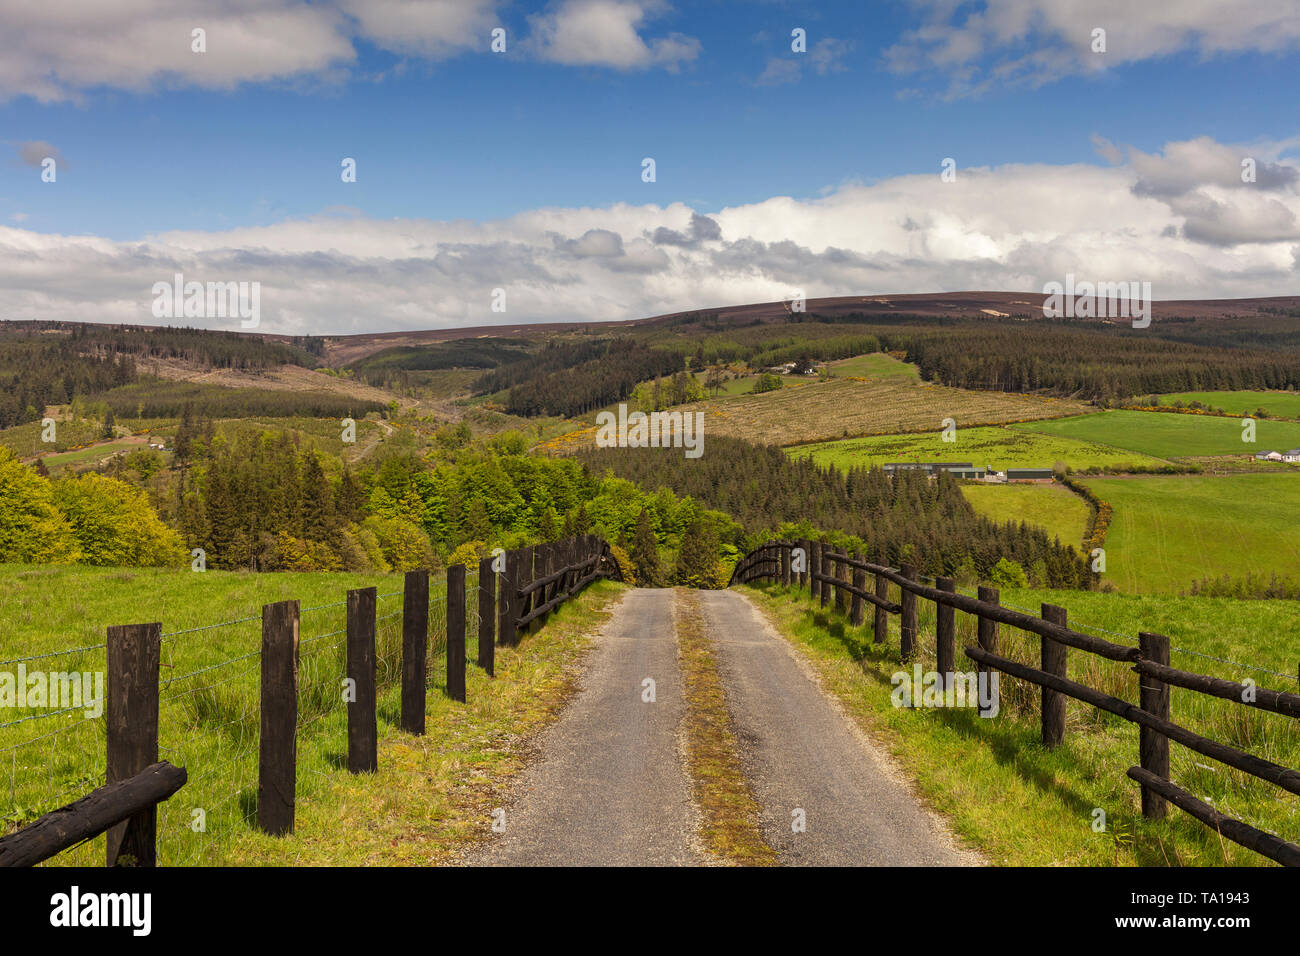 The Slieve Bloom Mountains between Kinnity and Mountrath, County Offaly, Ireland - Stock Image